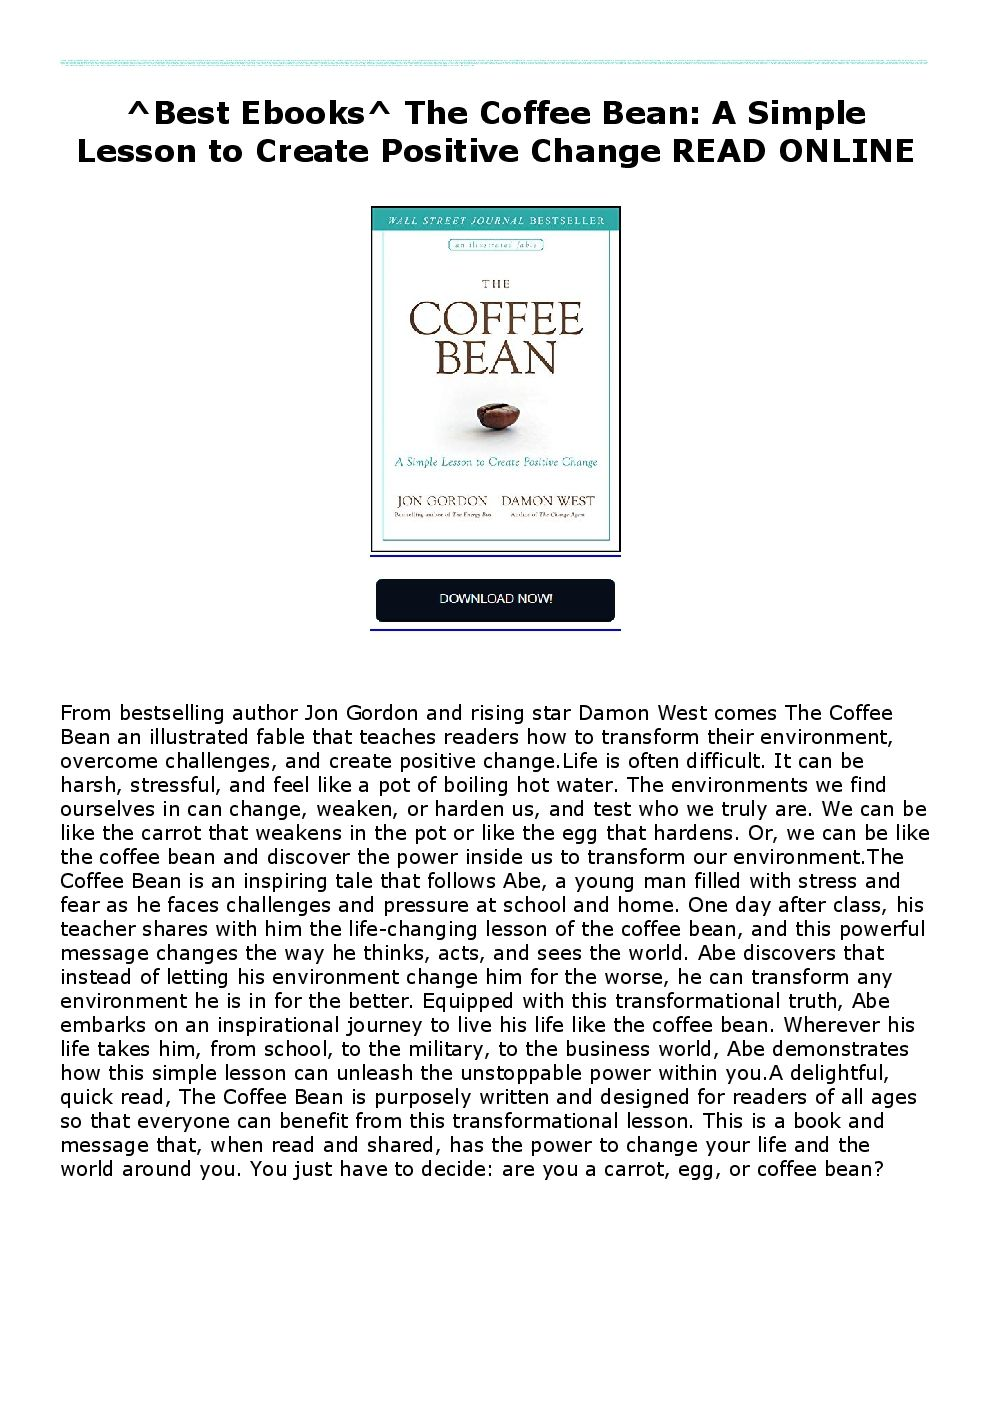 ^Best Ebooks^ The Coffee Bean A Simple Lesson to Create